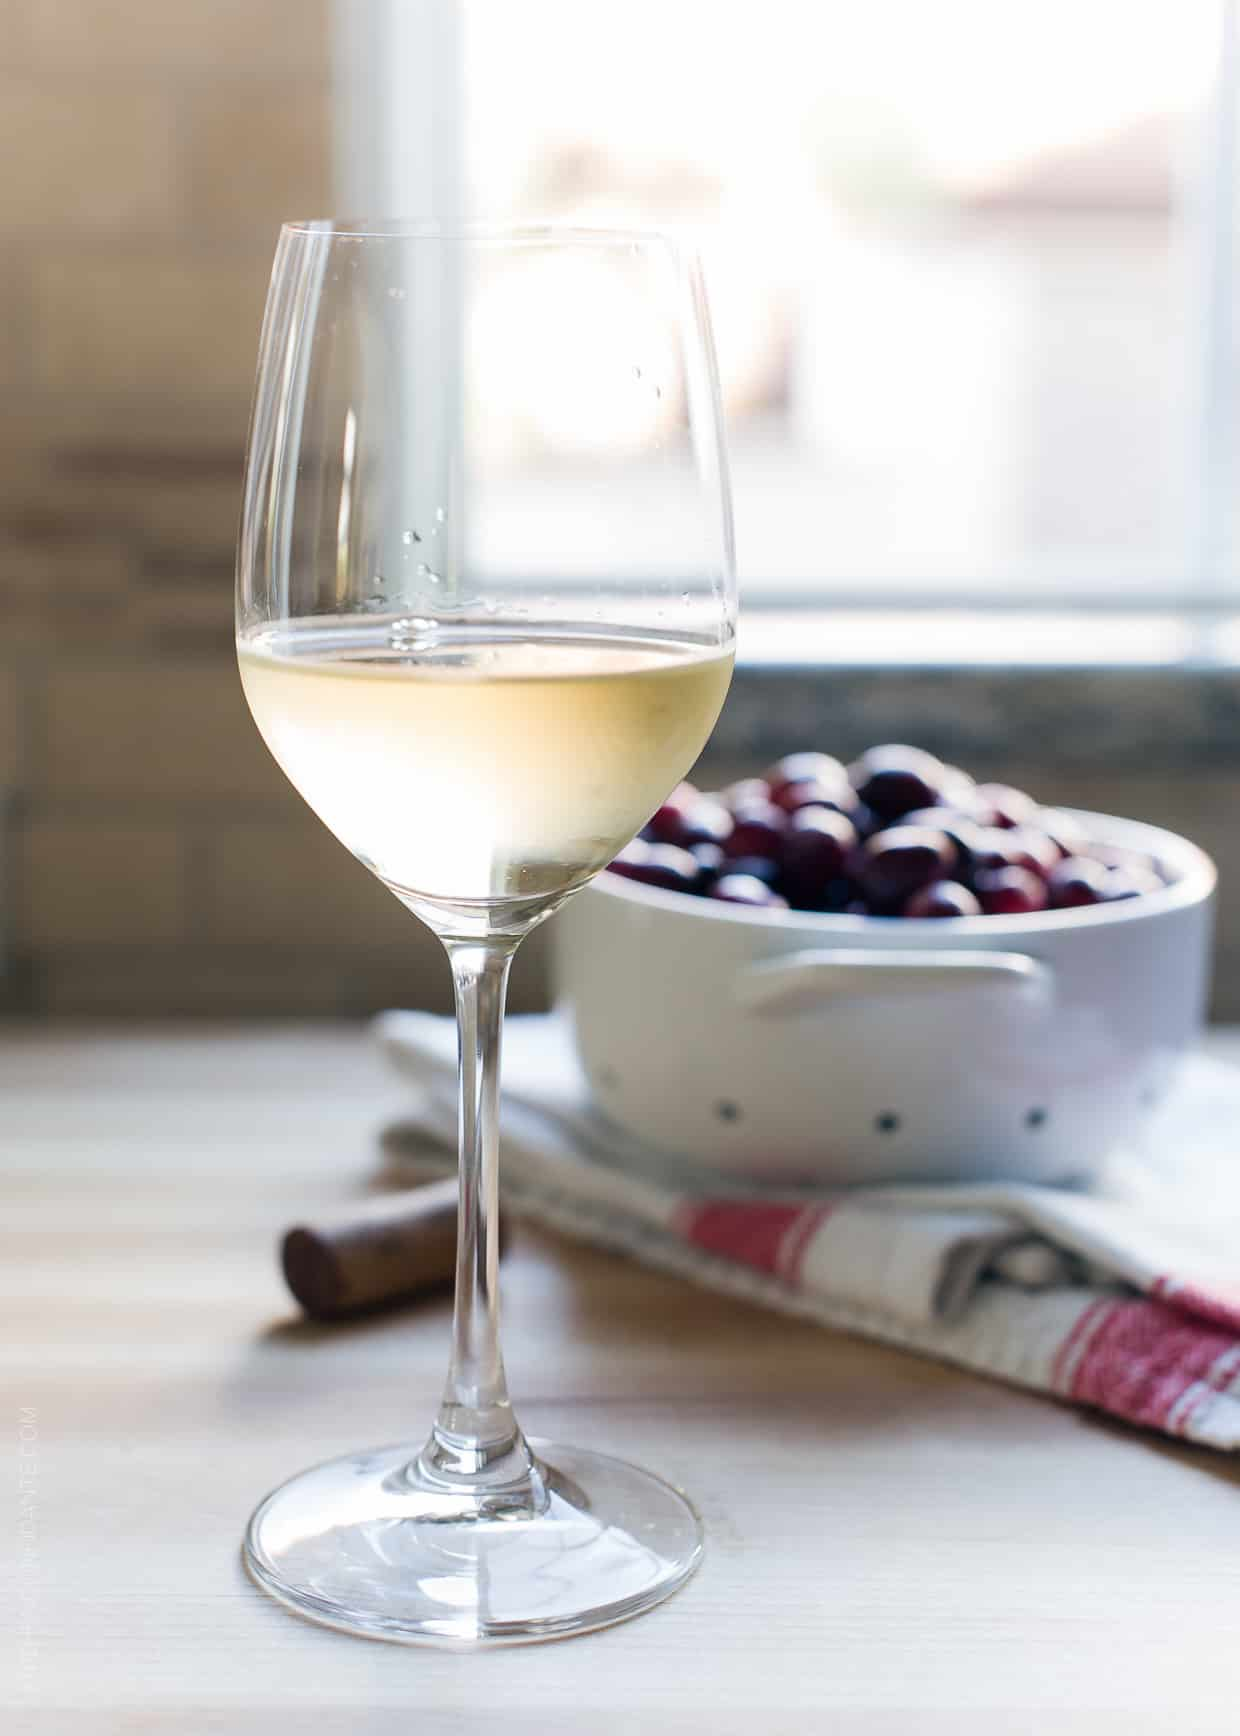 A glass of white wine with a bowl of cranberries in the background.